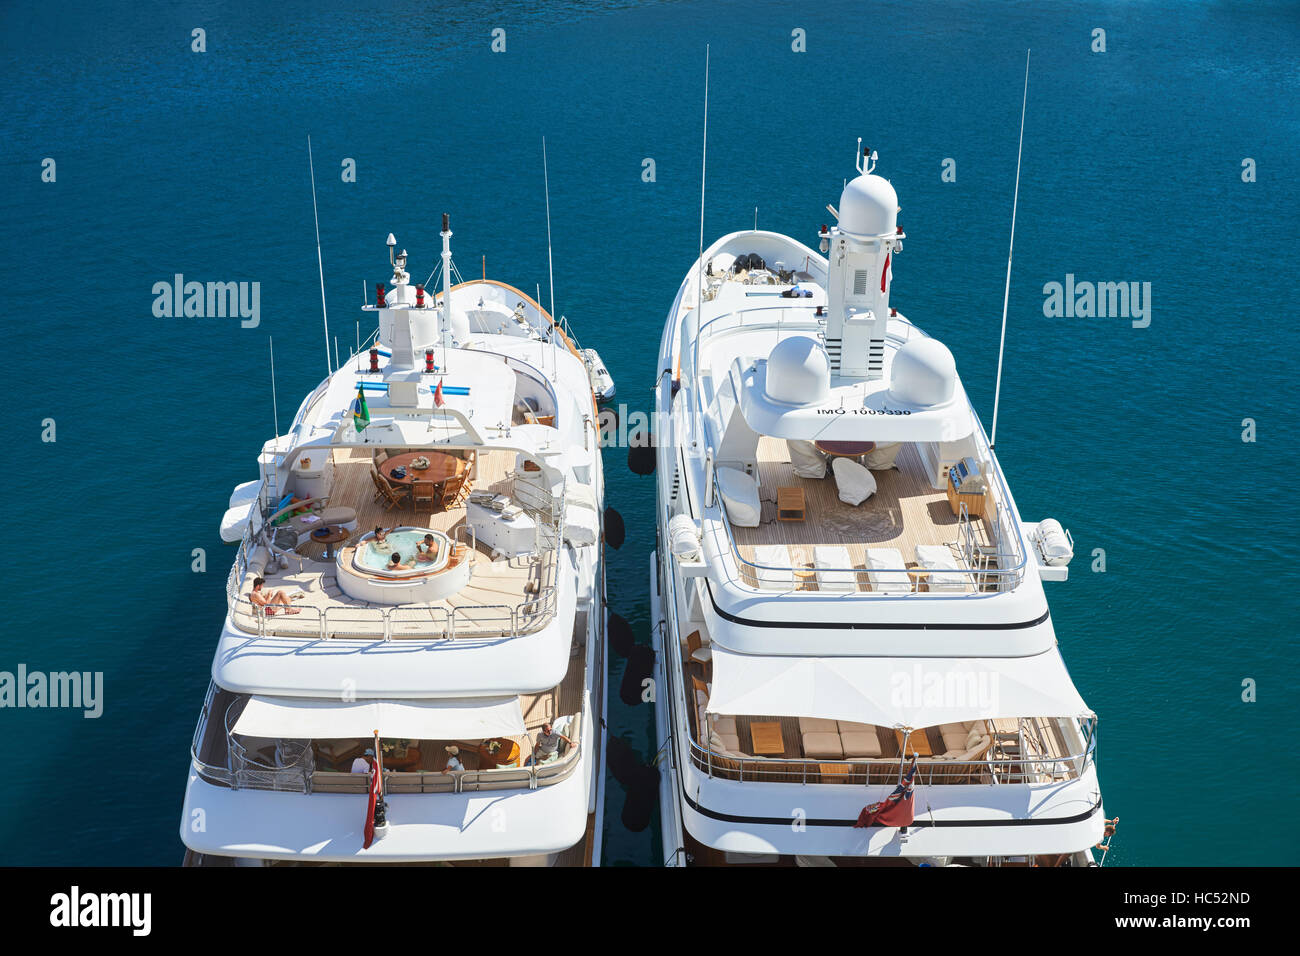 Port Hercules, People sunbathe on yachts, luxuriate in a jacuzzi on board the yacht, sunny day, megayachts - Stock Image